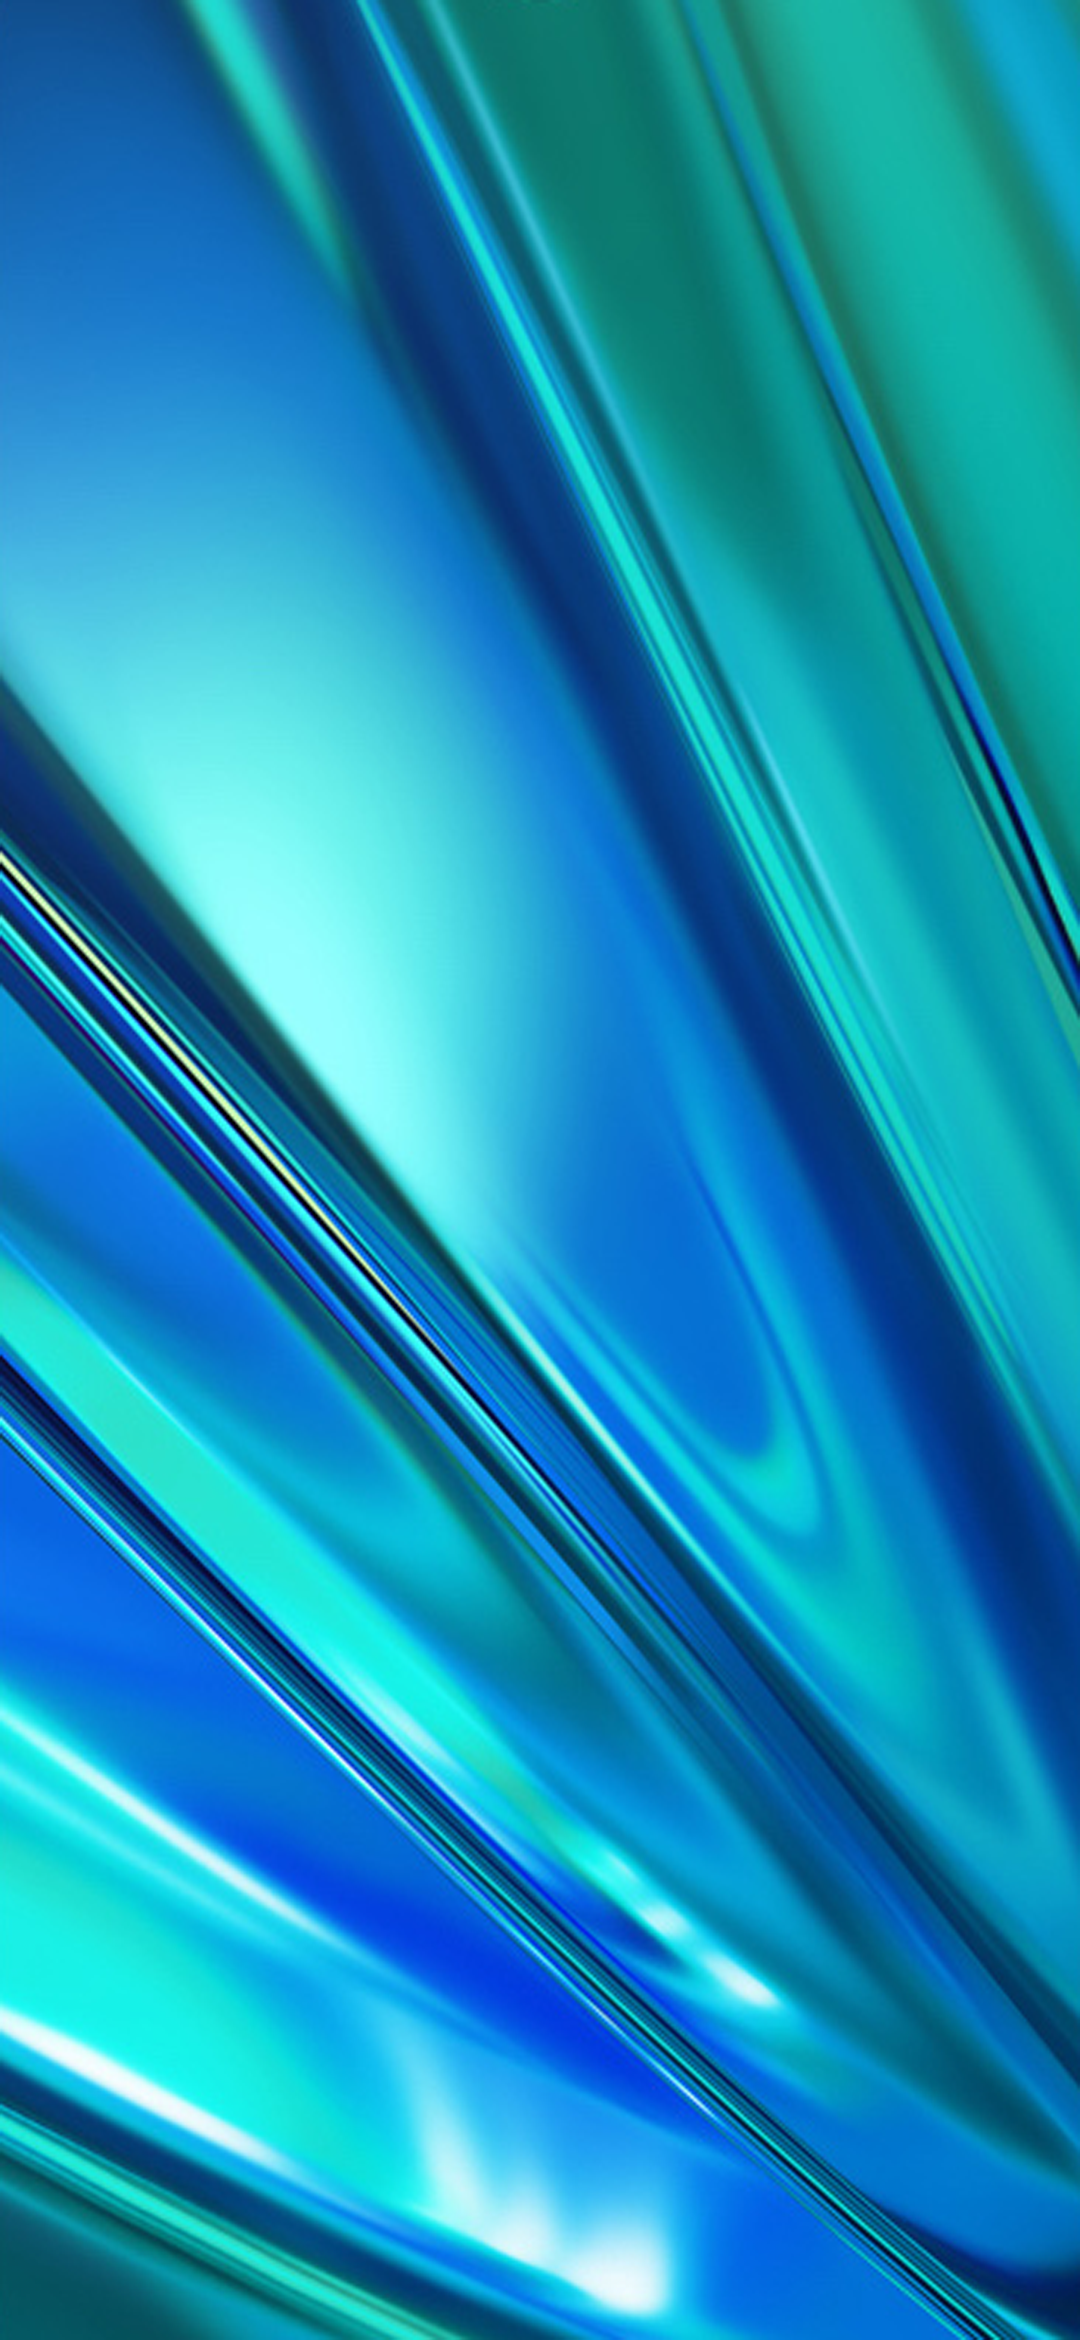 Realme 5 Pro Wallpapers - Top Free ...